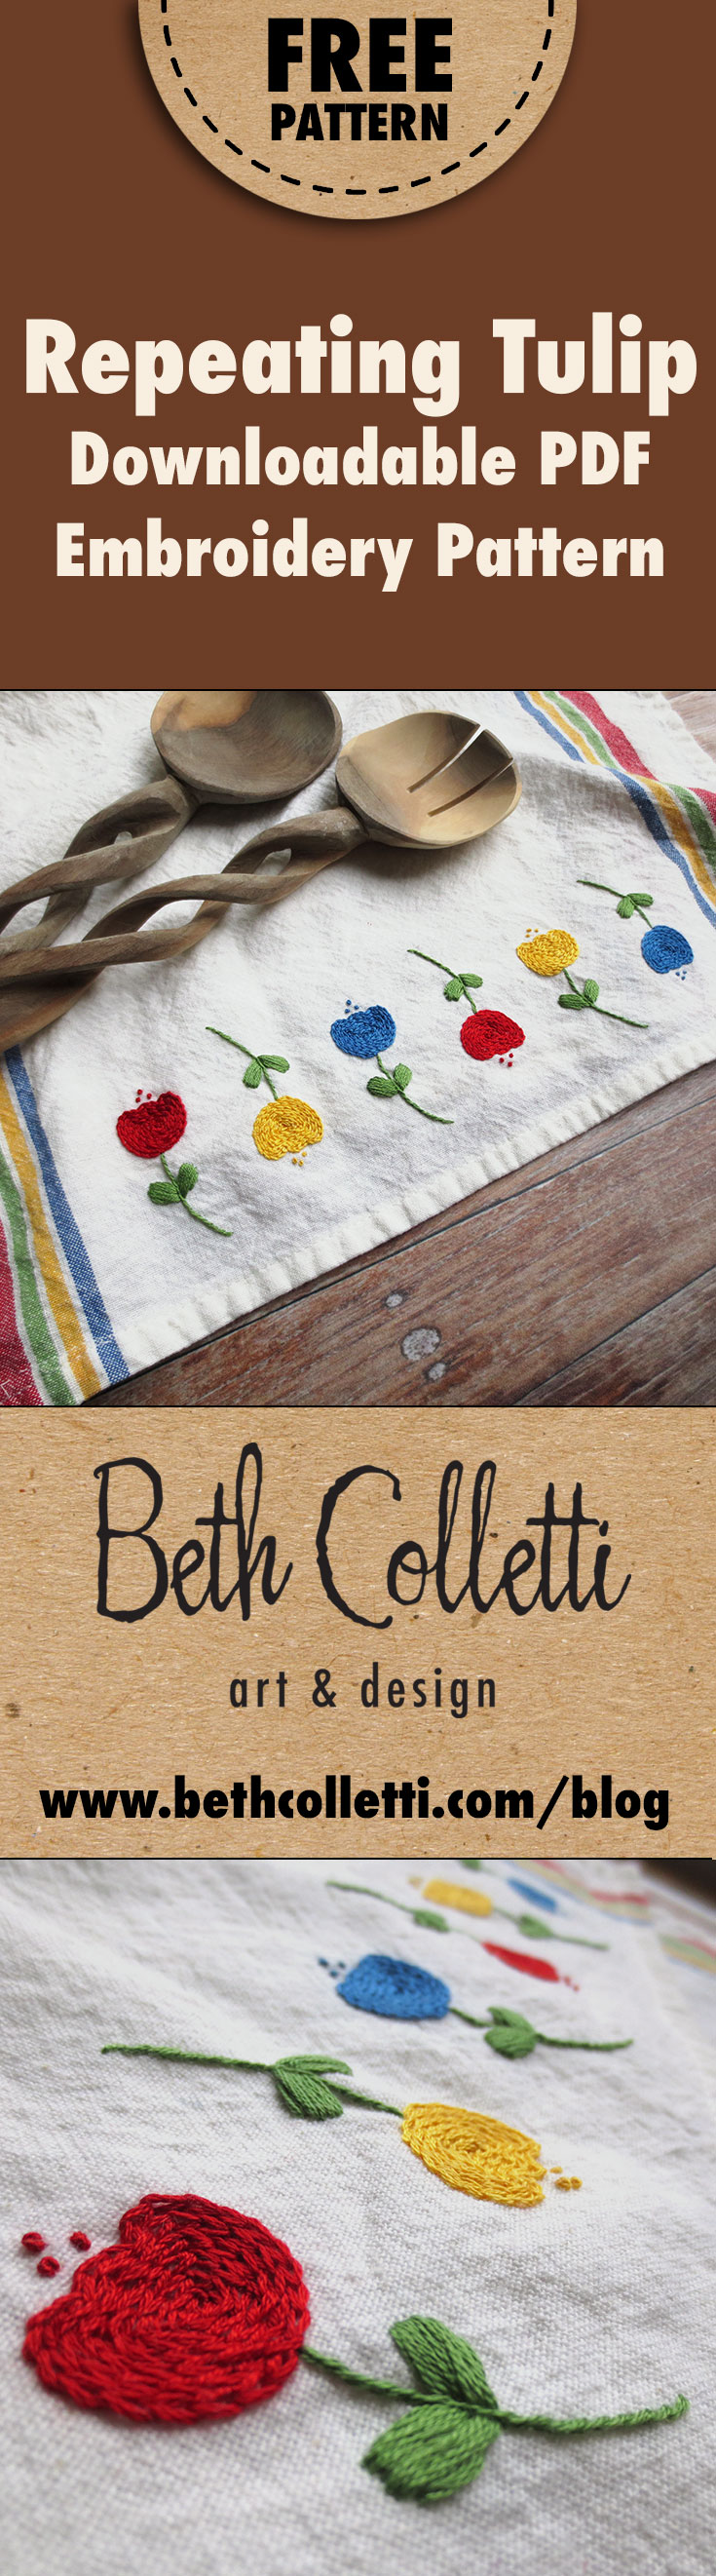 Beth_Colletti_FREE_Repeating_Tulip_Embroidery_Pattern.jpg